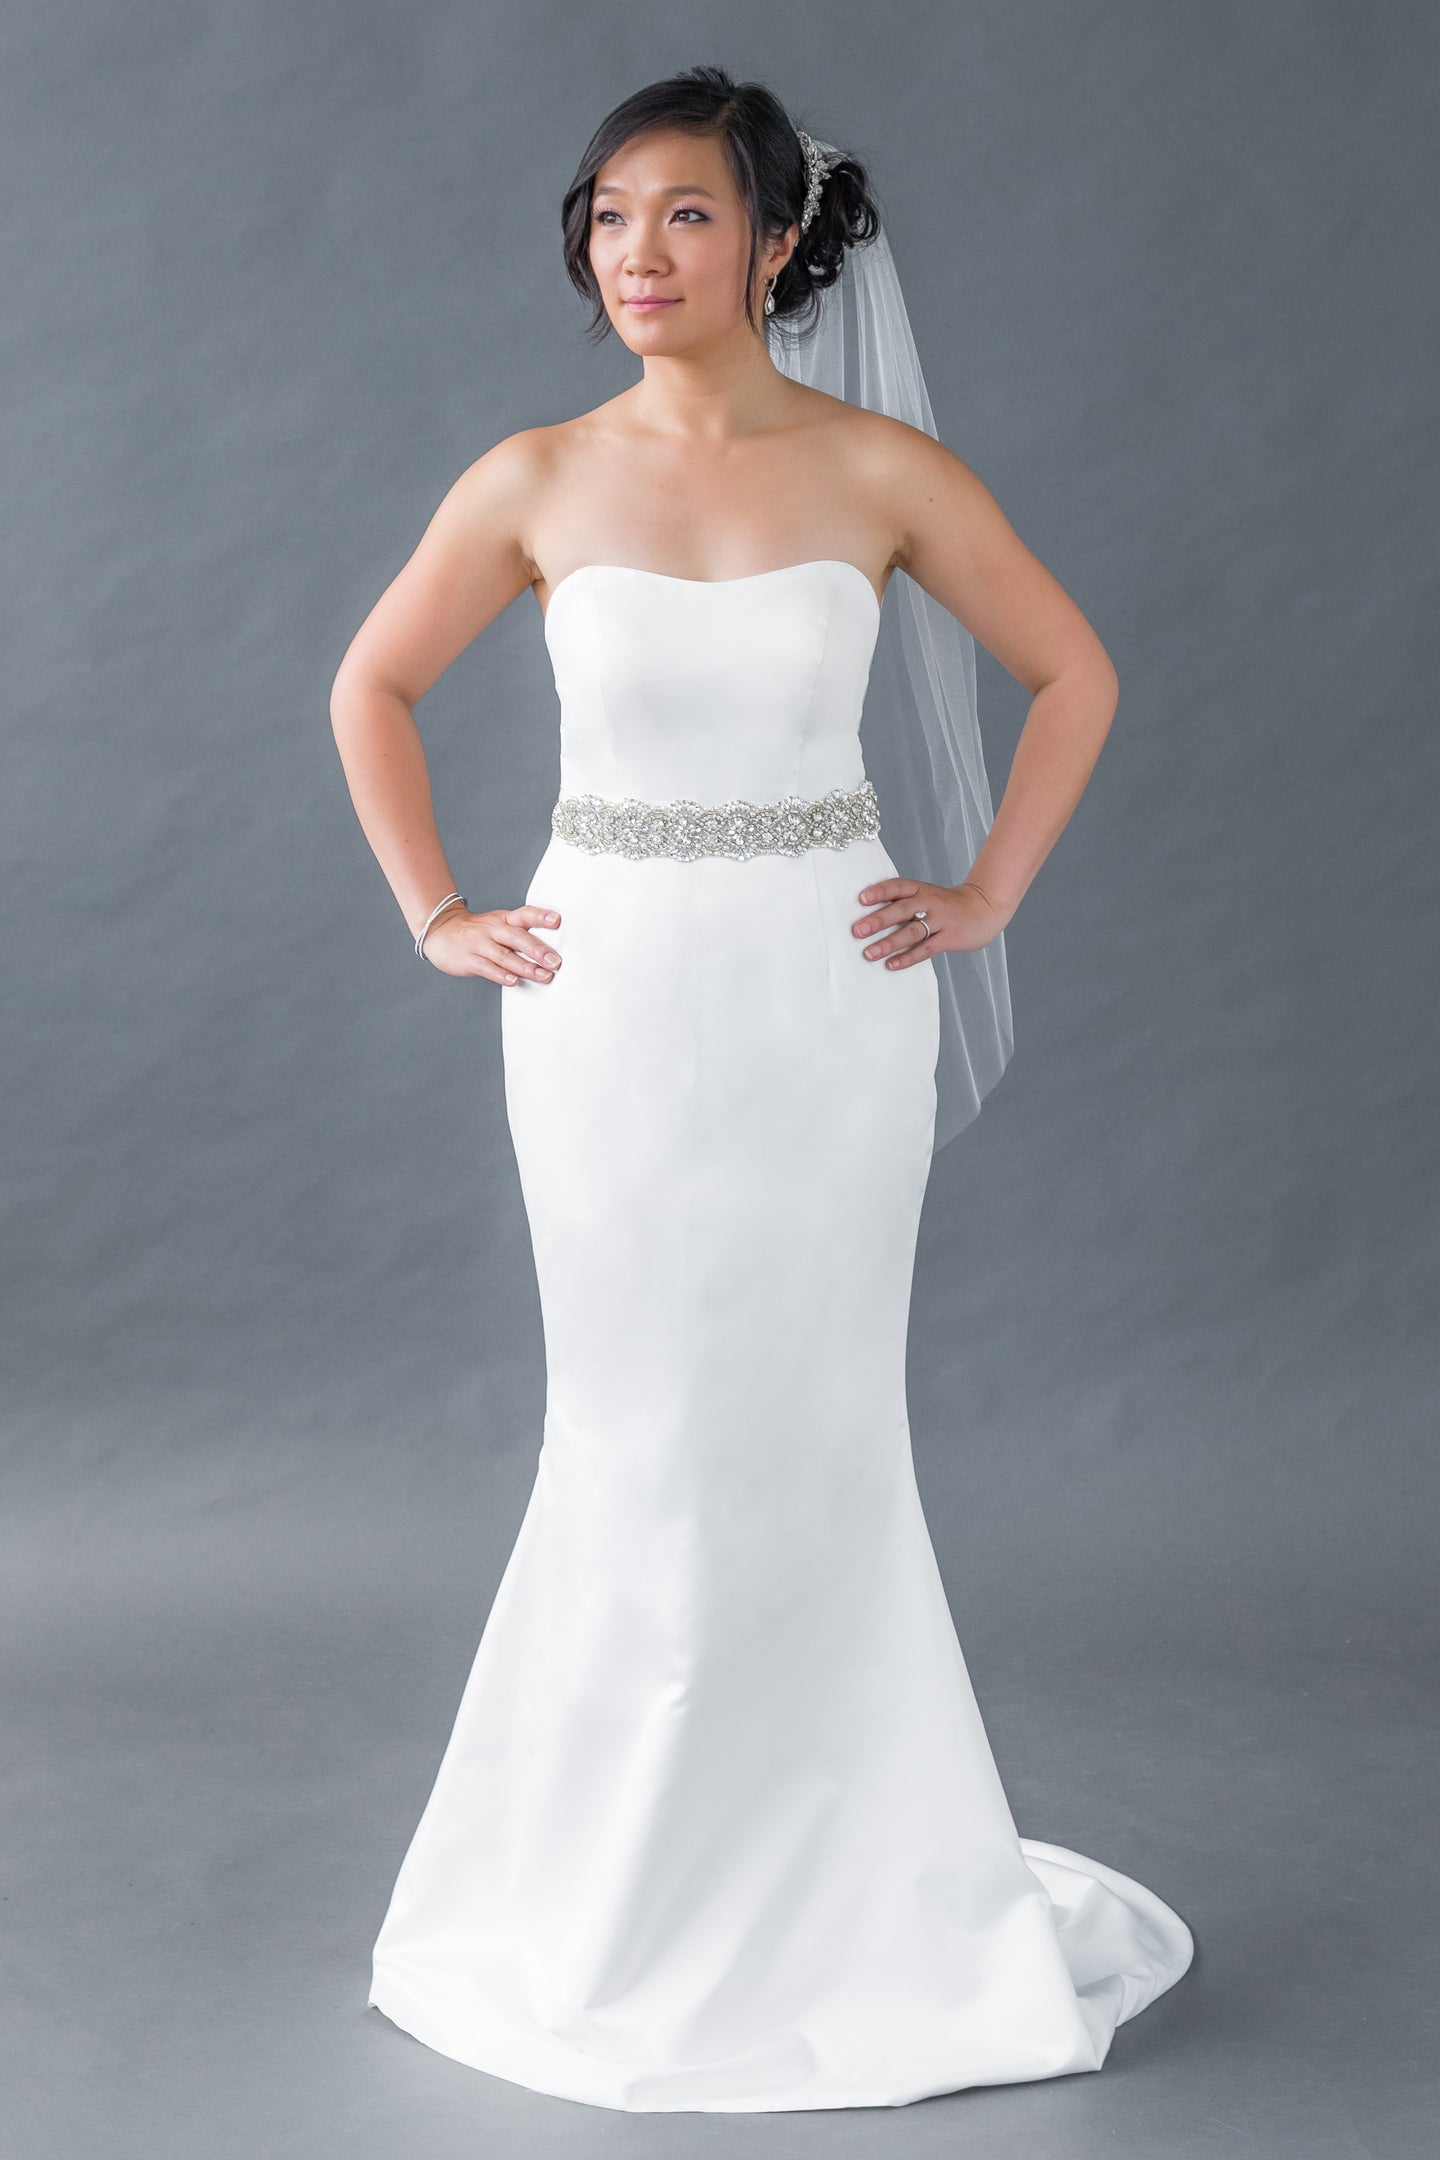 Gorgeous bridal gowns for all body shapes: plus size, curvy, or petite brides. Try on our wedding dresses at home. Size 0-30. Comfortable. Convenient. Fun. Lace or satin. Mermaid or A-line. This strapless satin top has a simple semi-sweetheart neckline and design that allows you to pair anything with it. Soft satin mermaid skirt that will not fail to flatter your body. Style with a jeweled belt if desired.